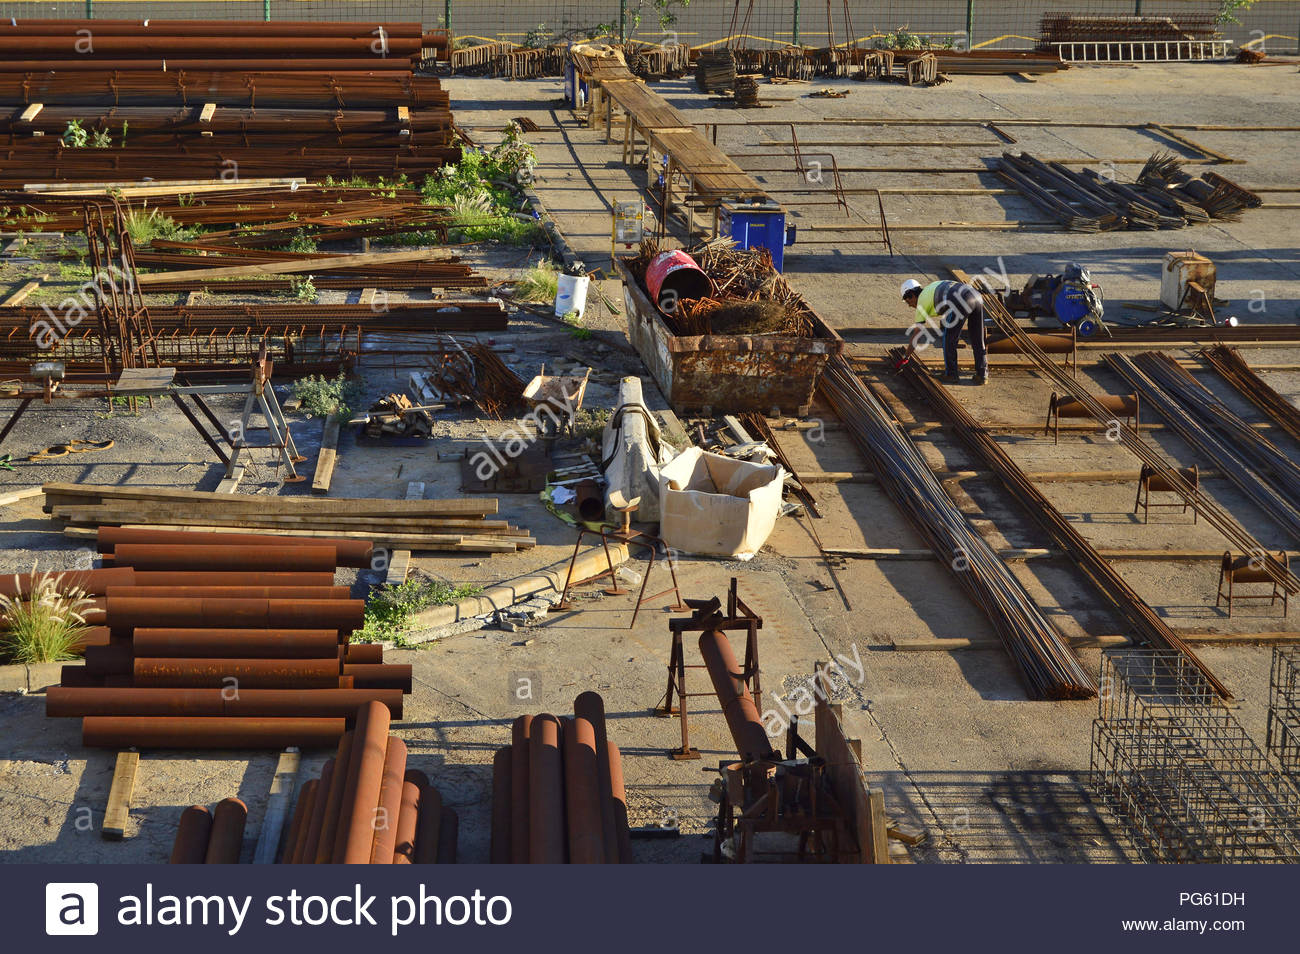 Construction site - reinforcement steel preparation in Santa Cruz de Tenerife Canary Islands Spain. - Stock Image